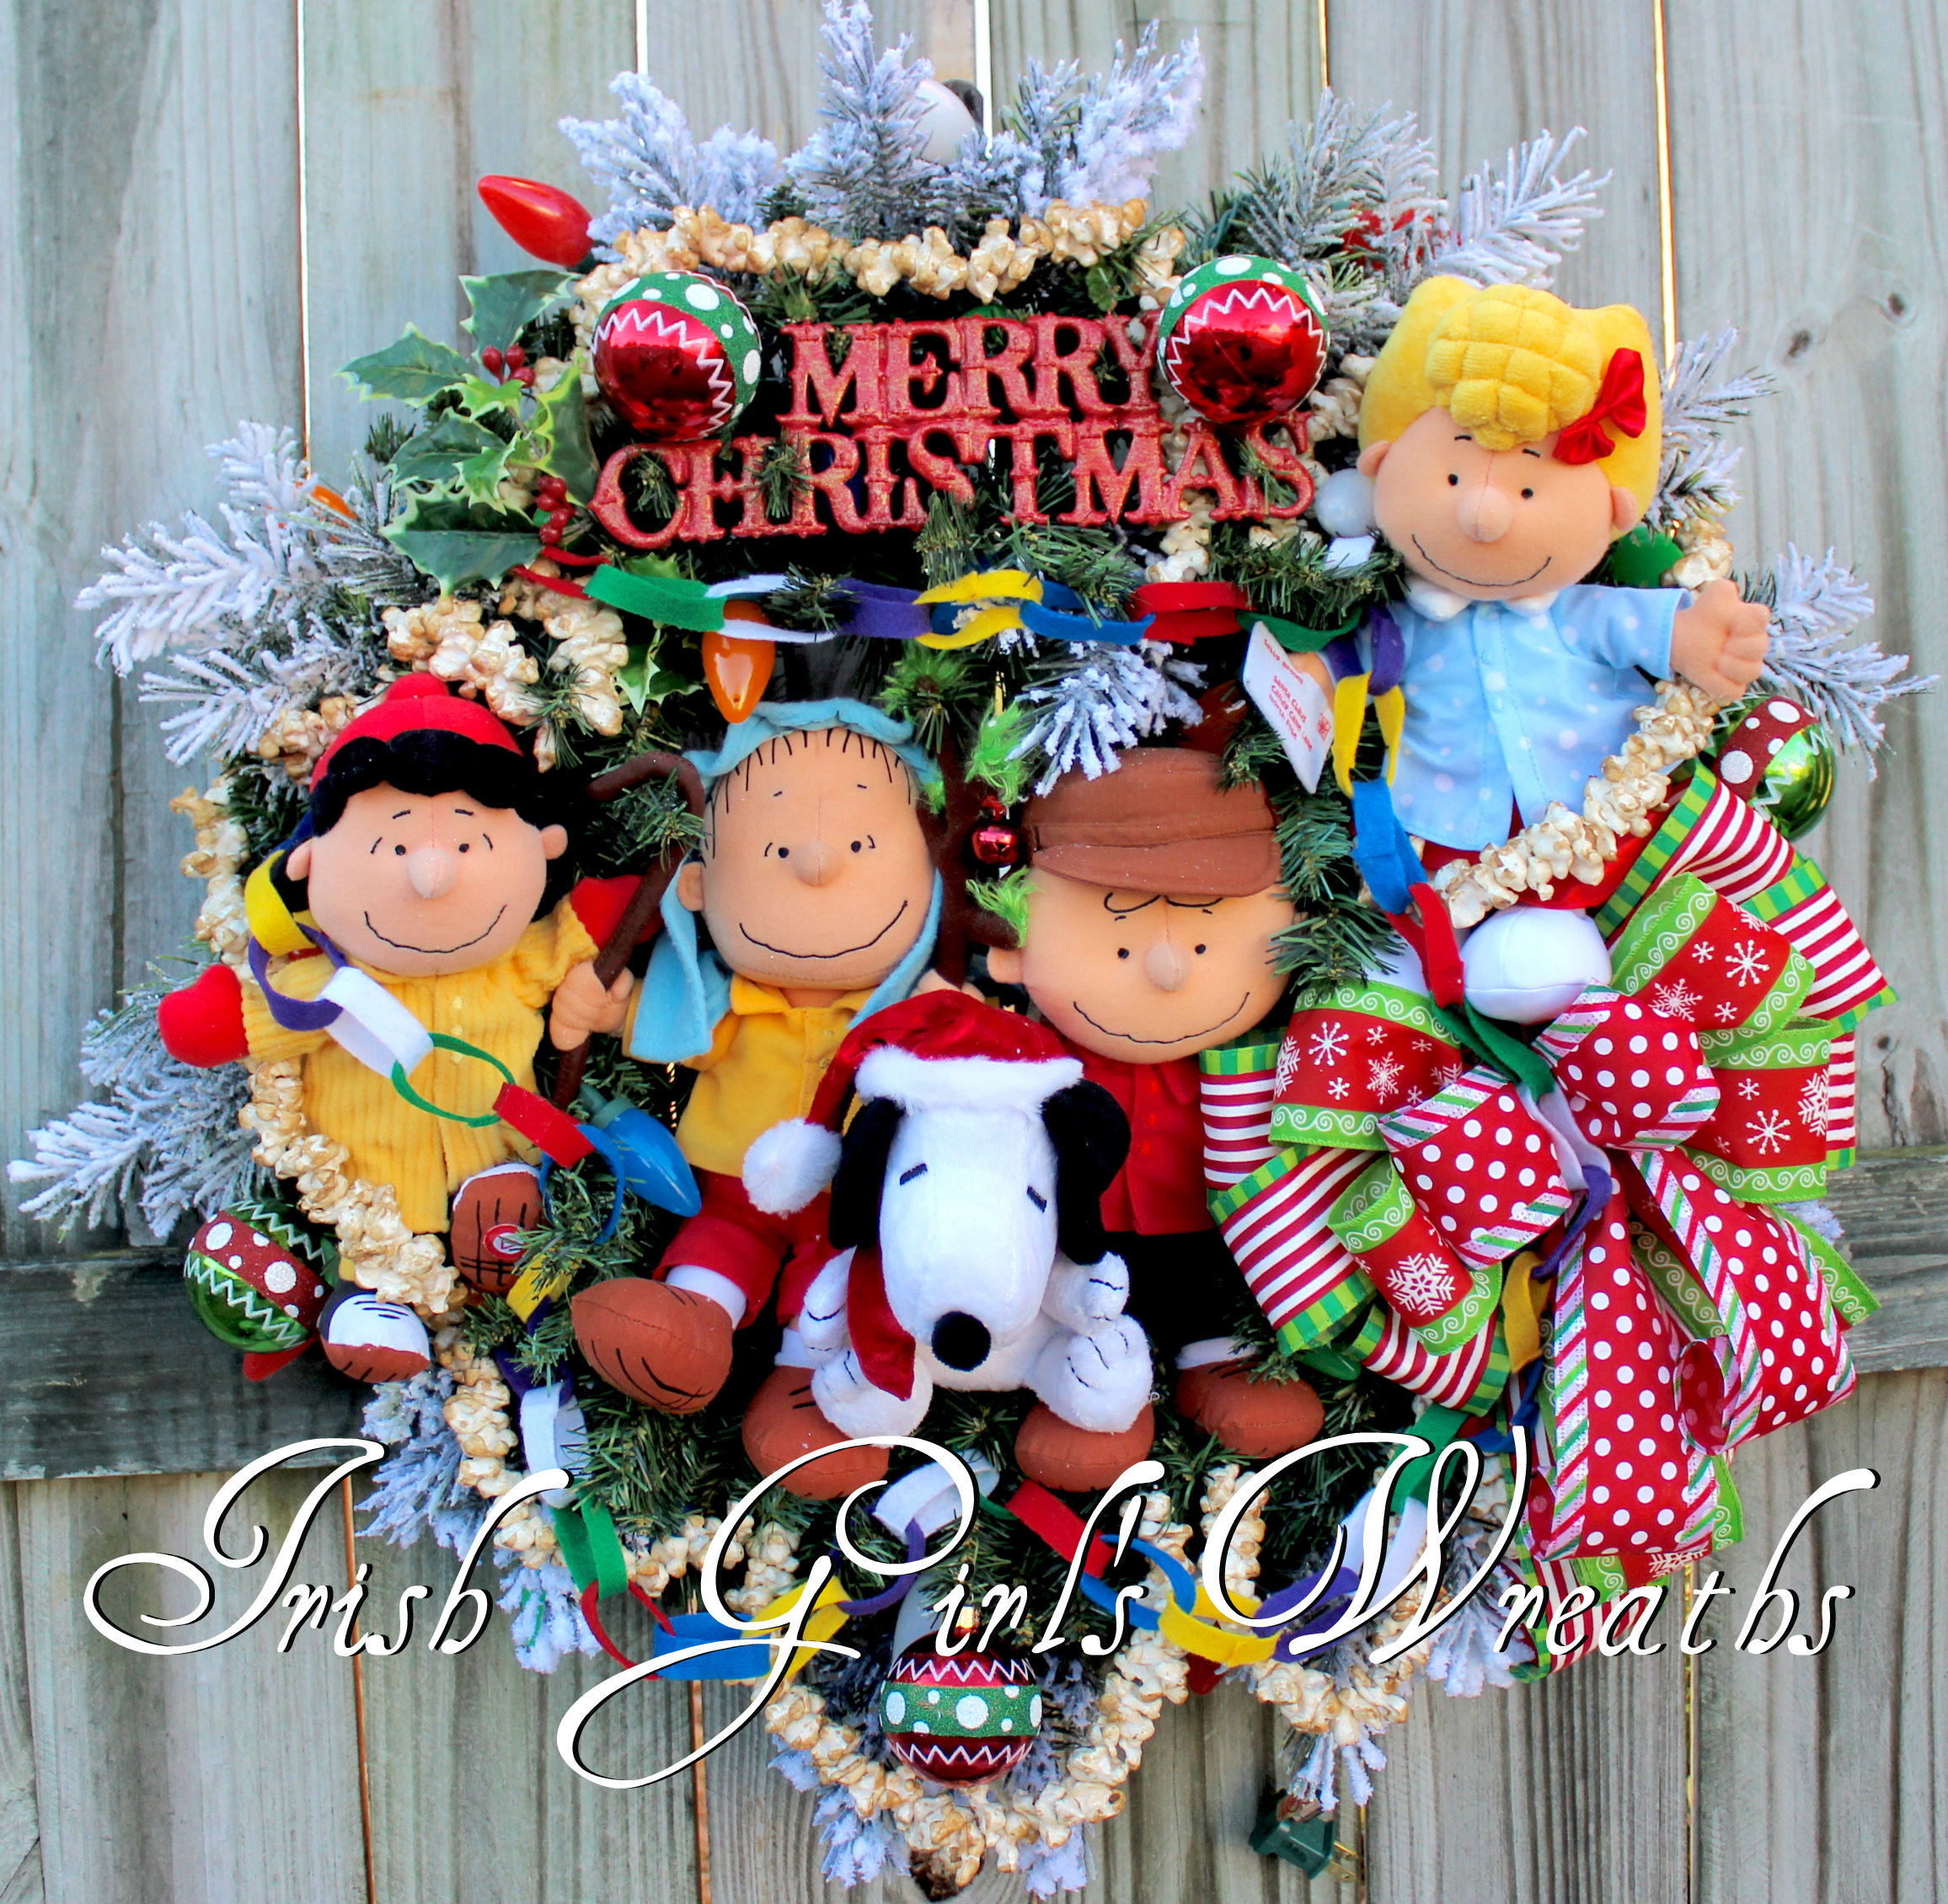 Deluxe Charlie Brown Peanuts Gang Christmas Wreath with lights – featuring Shepherd Linus, Lucy, Snoopy, Sally – Custom for Maribeth